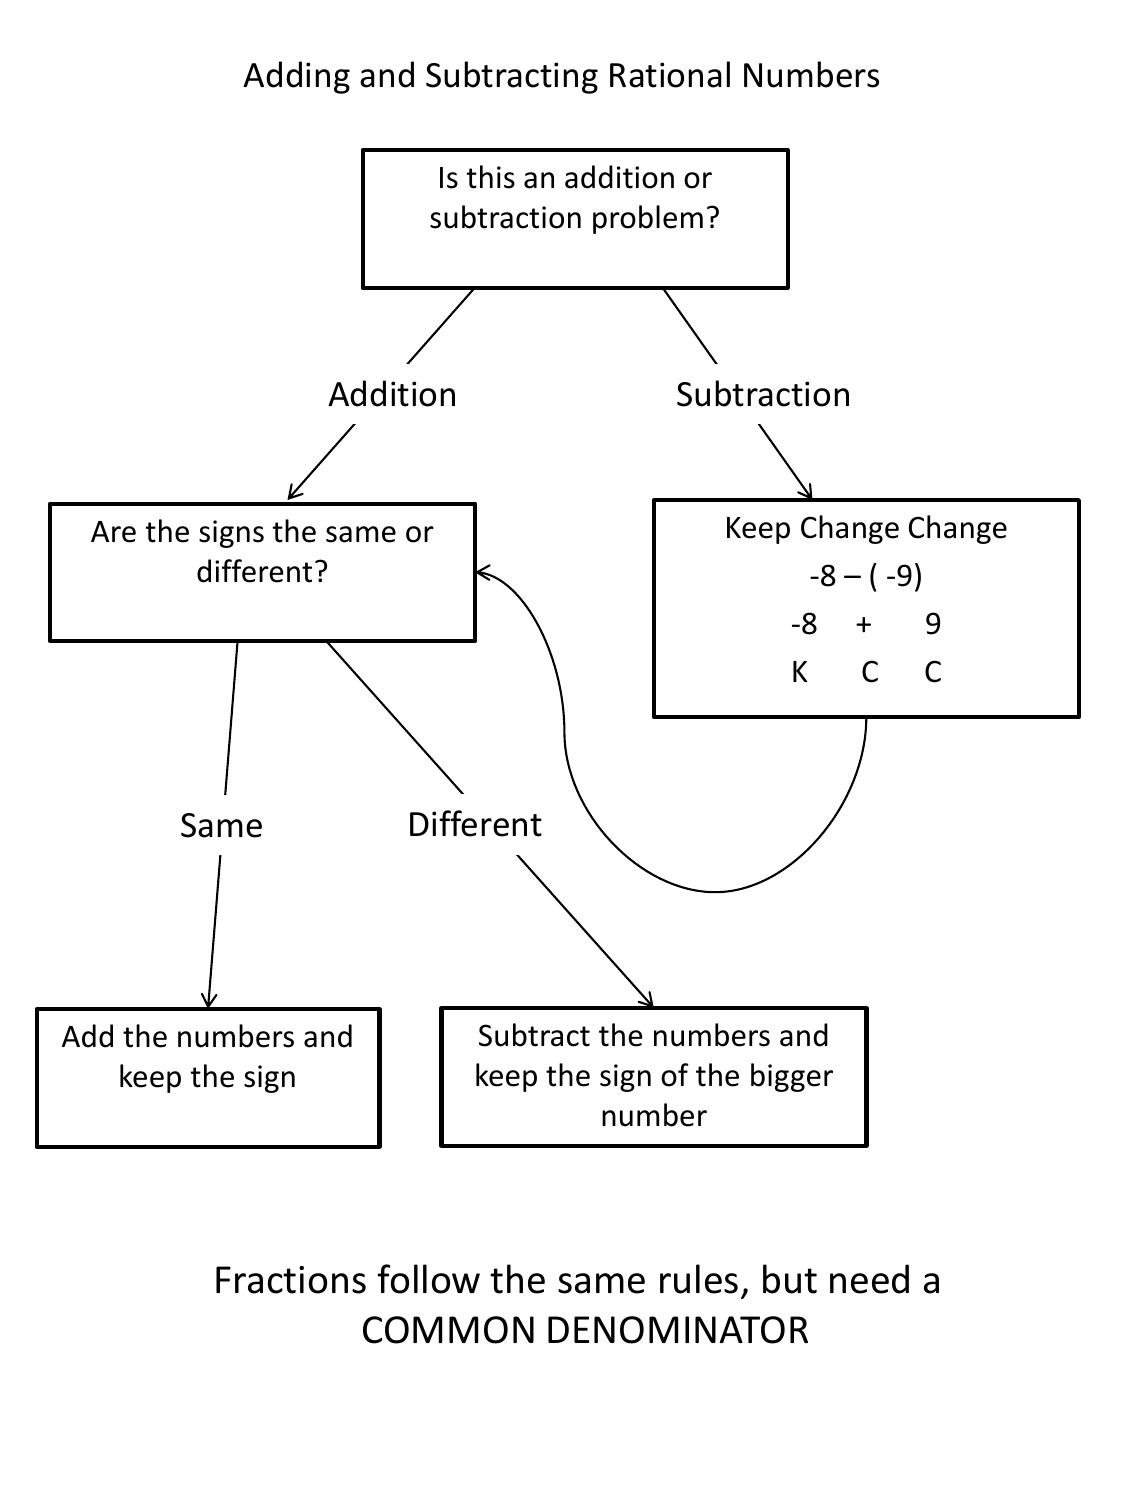 Adding And Subtracting Integers Flowchart